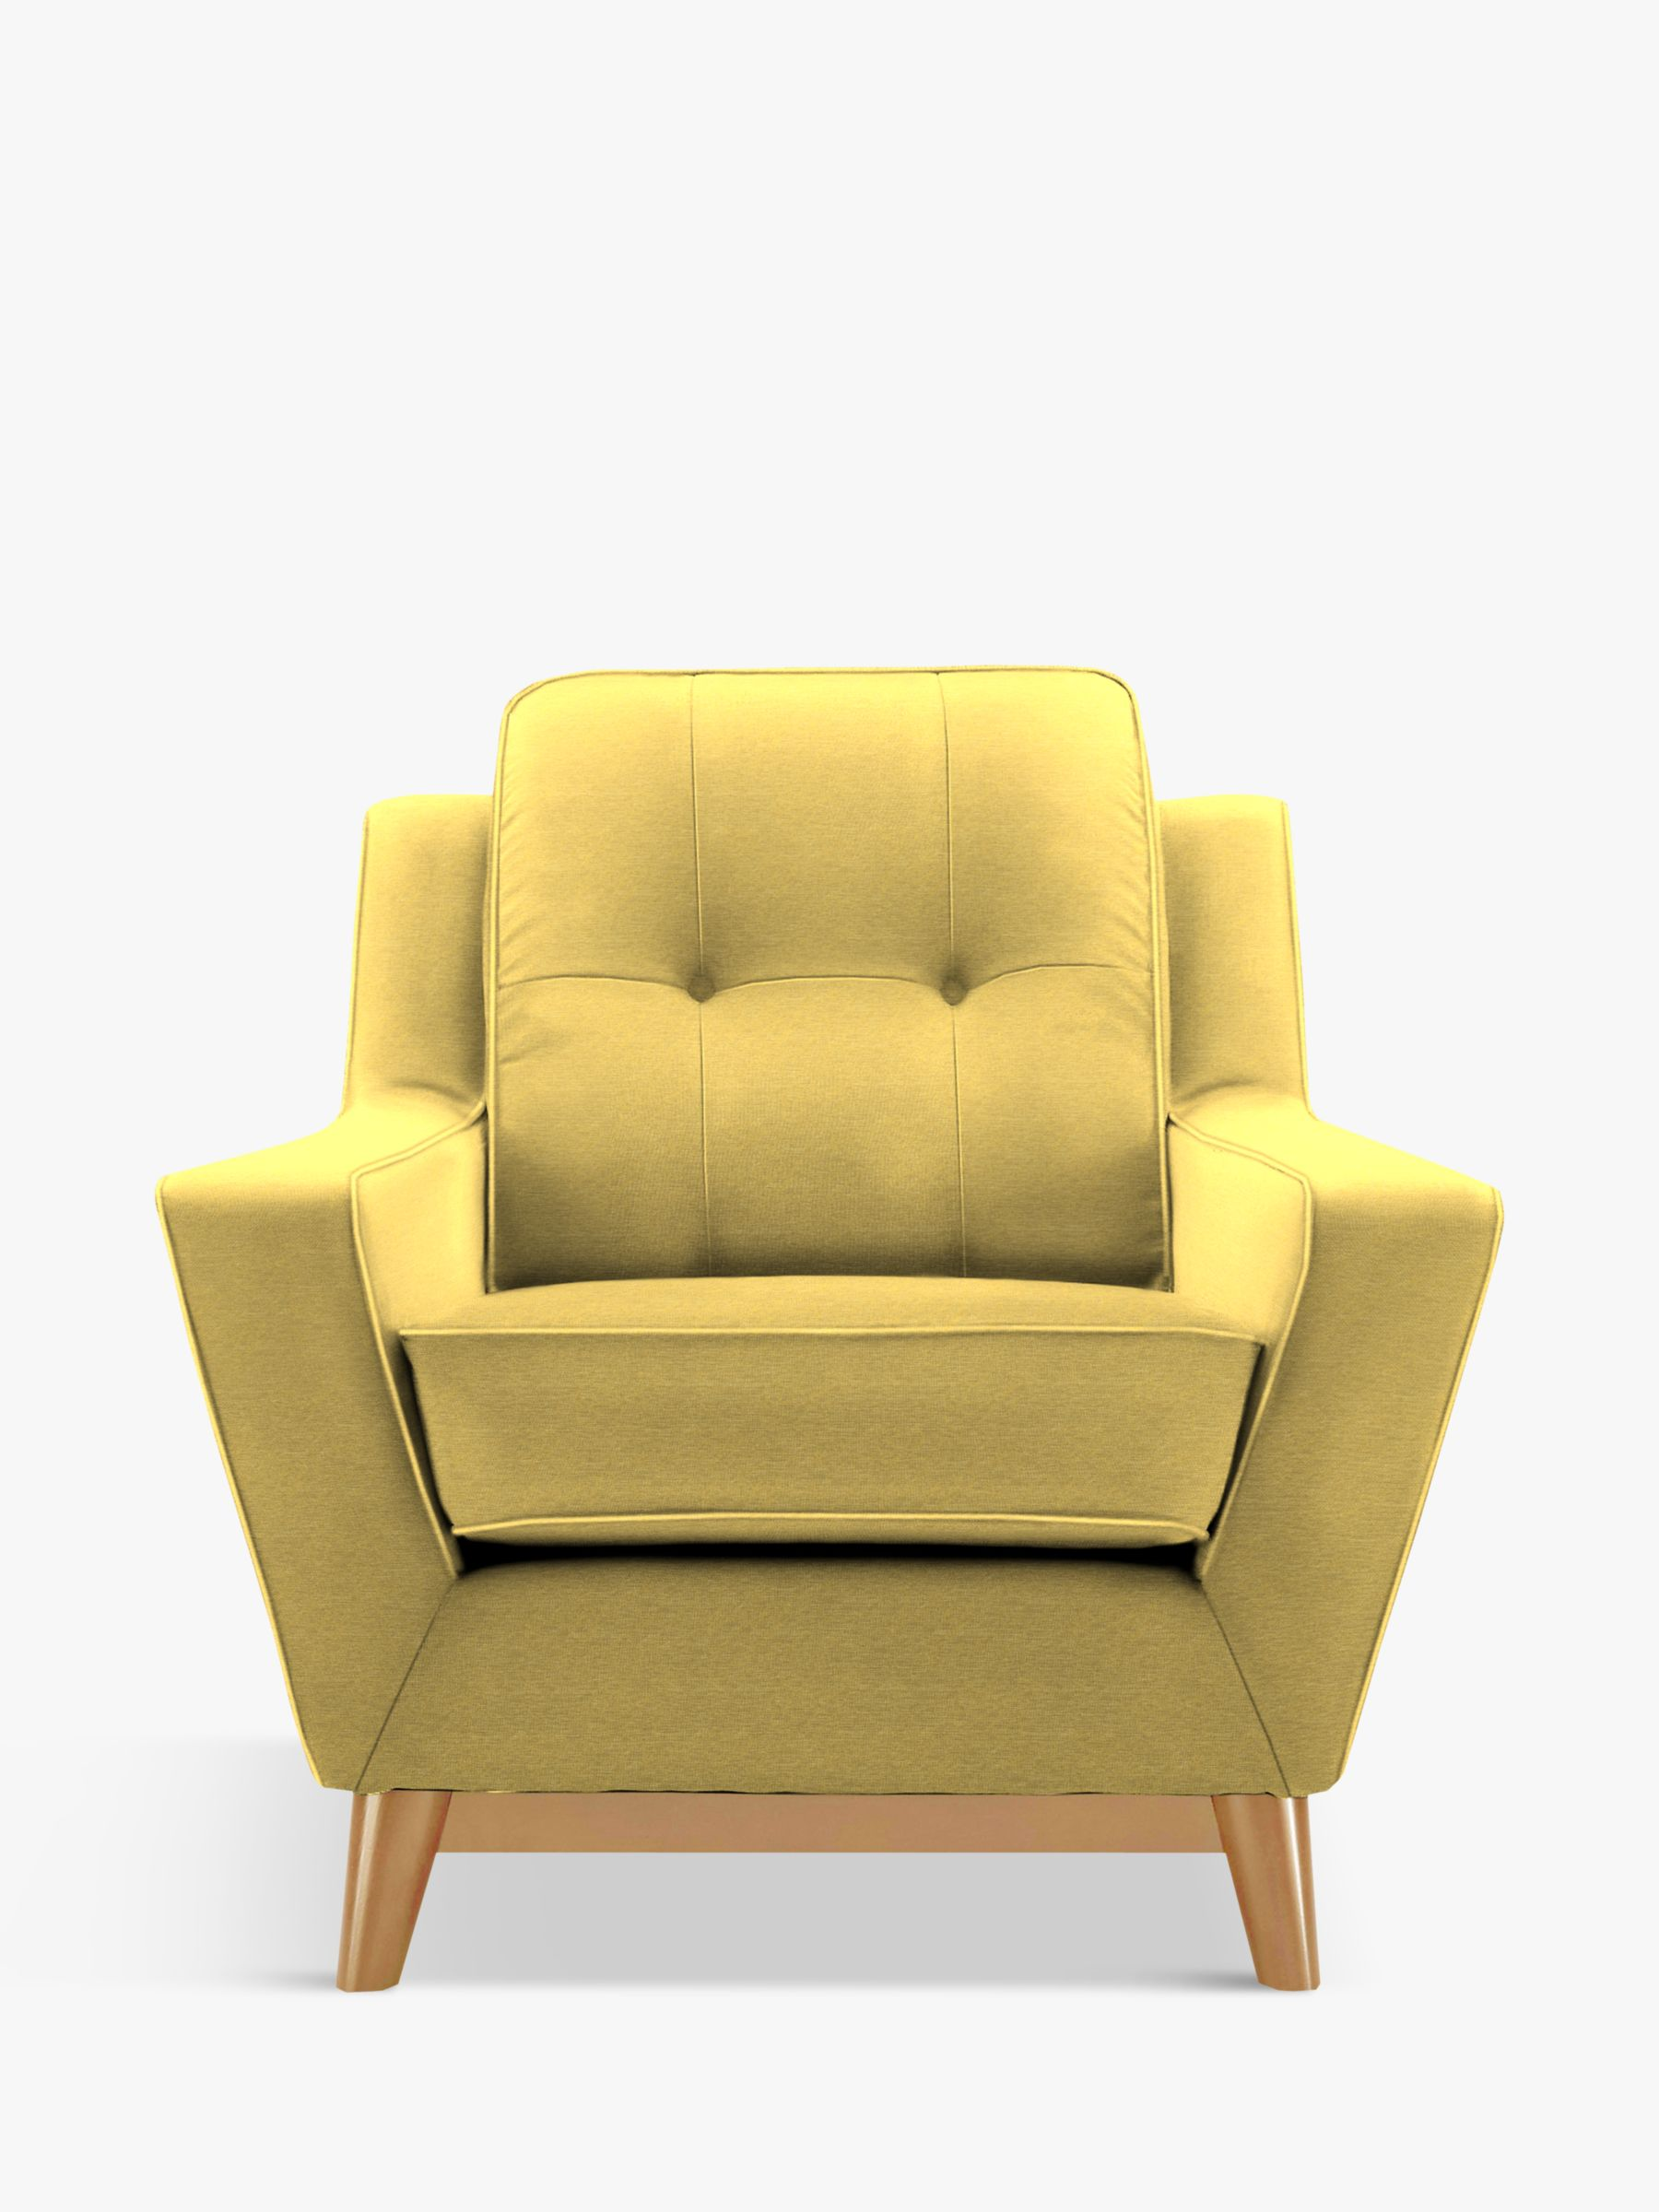 G Plan Vintage The Fifty Three Armchair, Tonic Mustard